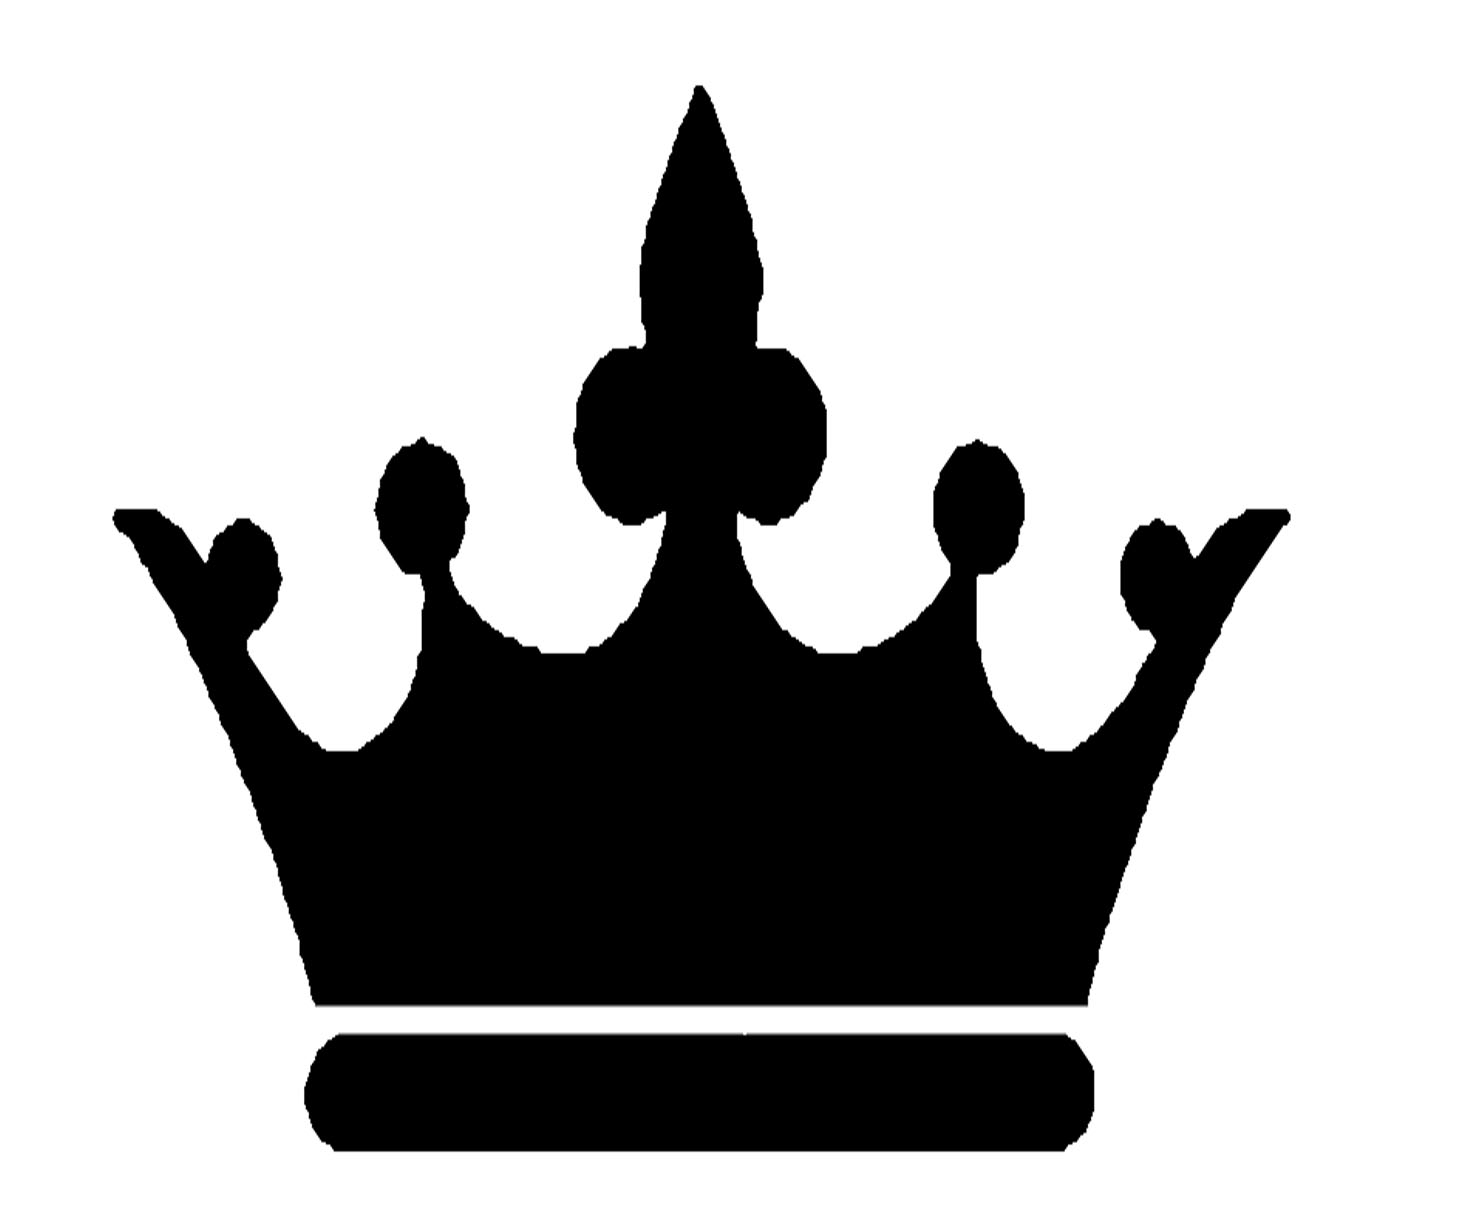 King Crown Cartoon Clipart Free Download On Clipartmag Free Photos Cartoon crown transparent images (1,796). king crown cartoon clipart free download on clipartmag free photos